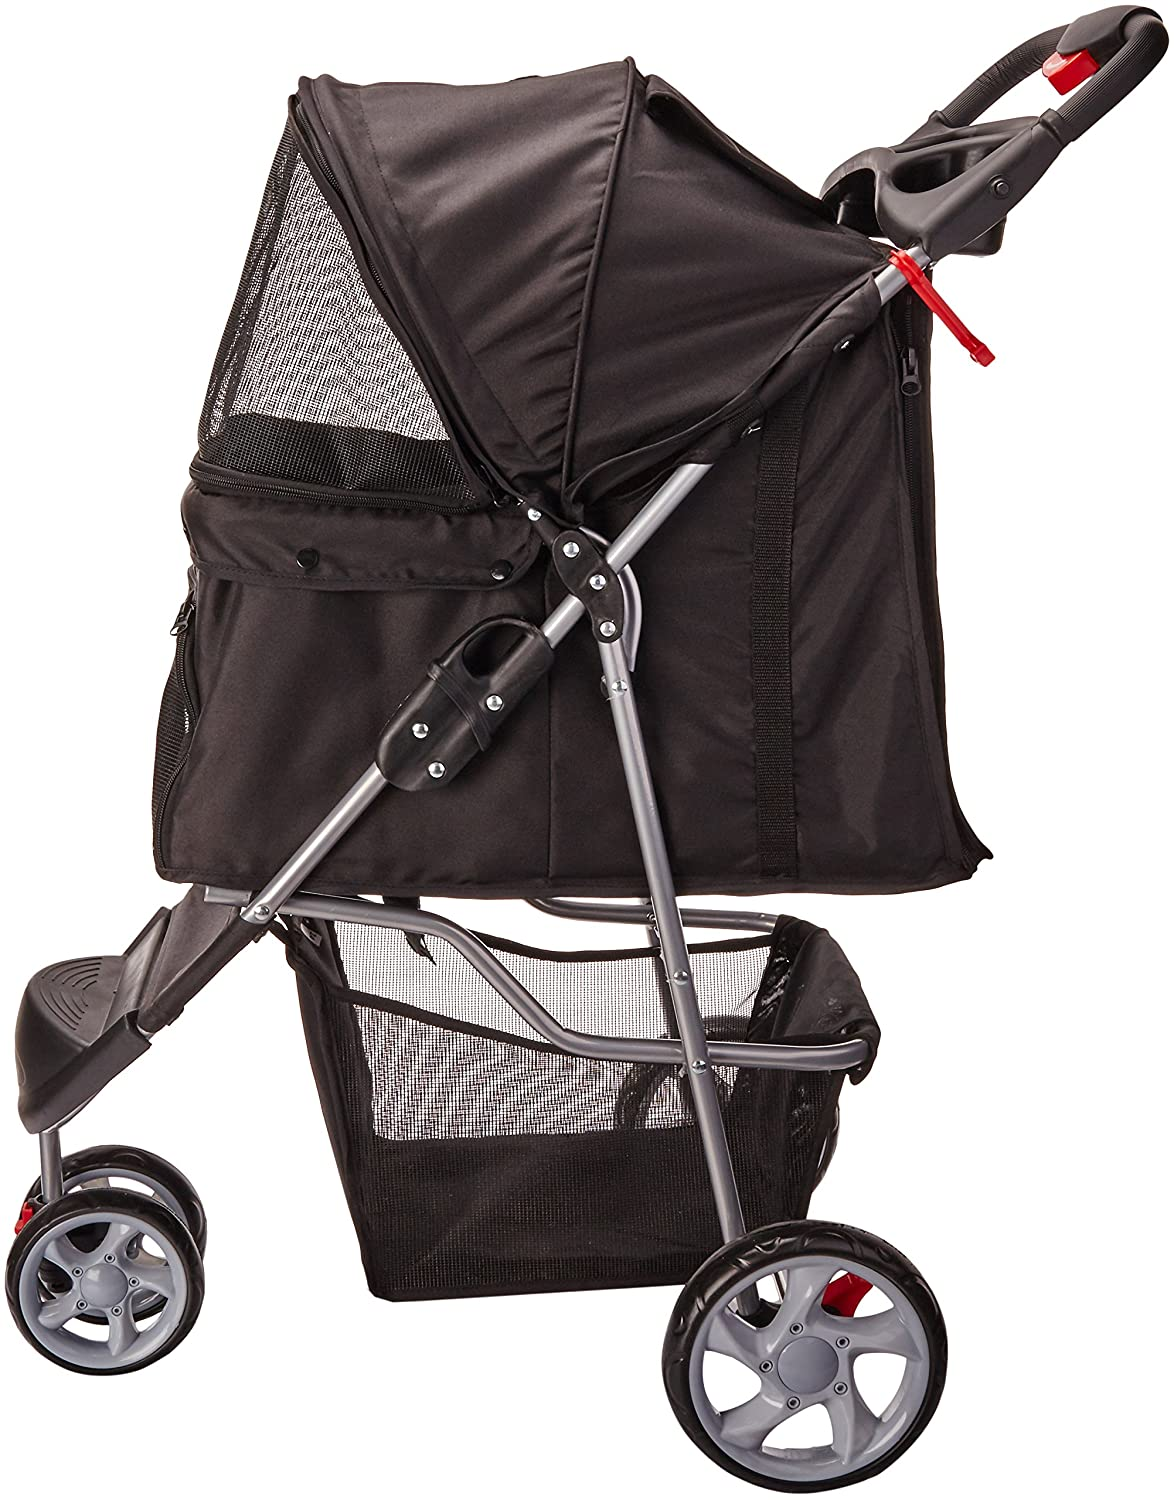 Paws & Pals 3 Wheeler Elite Jogger Pet Stroller, Onyx Black – Best Dog Stroller for Style